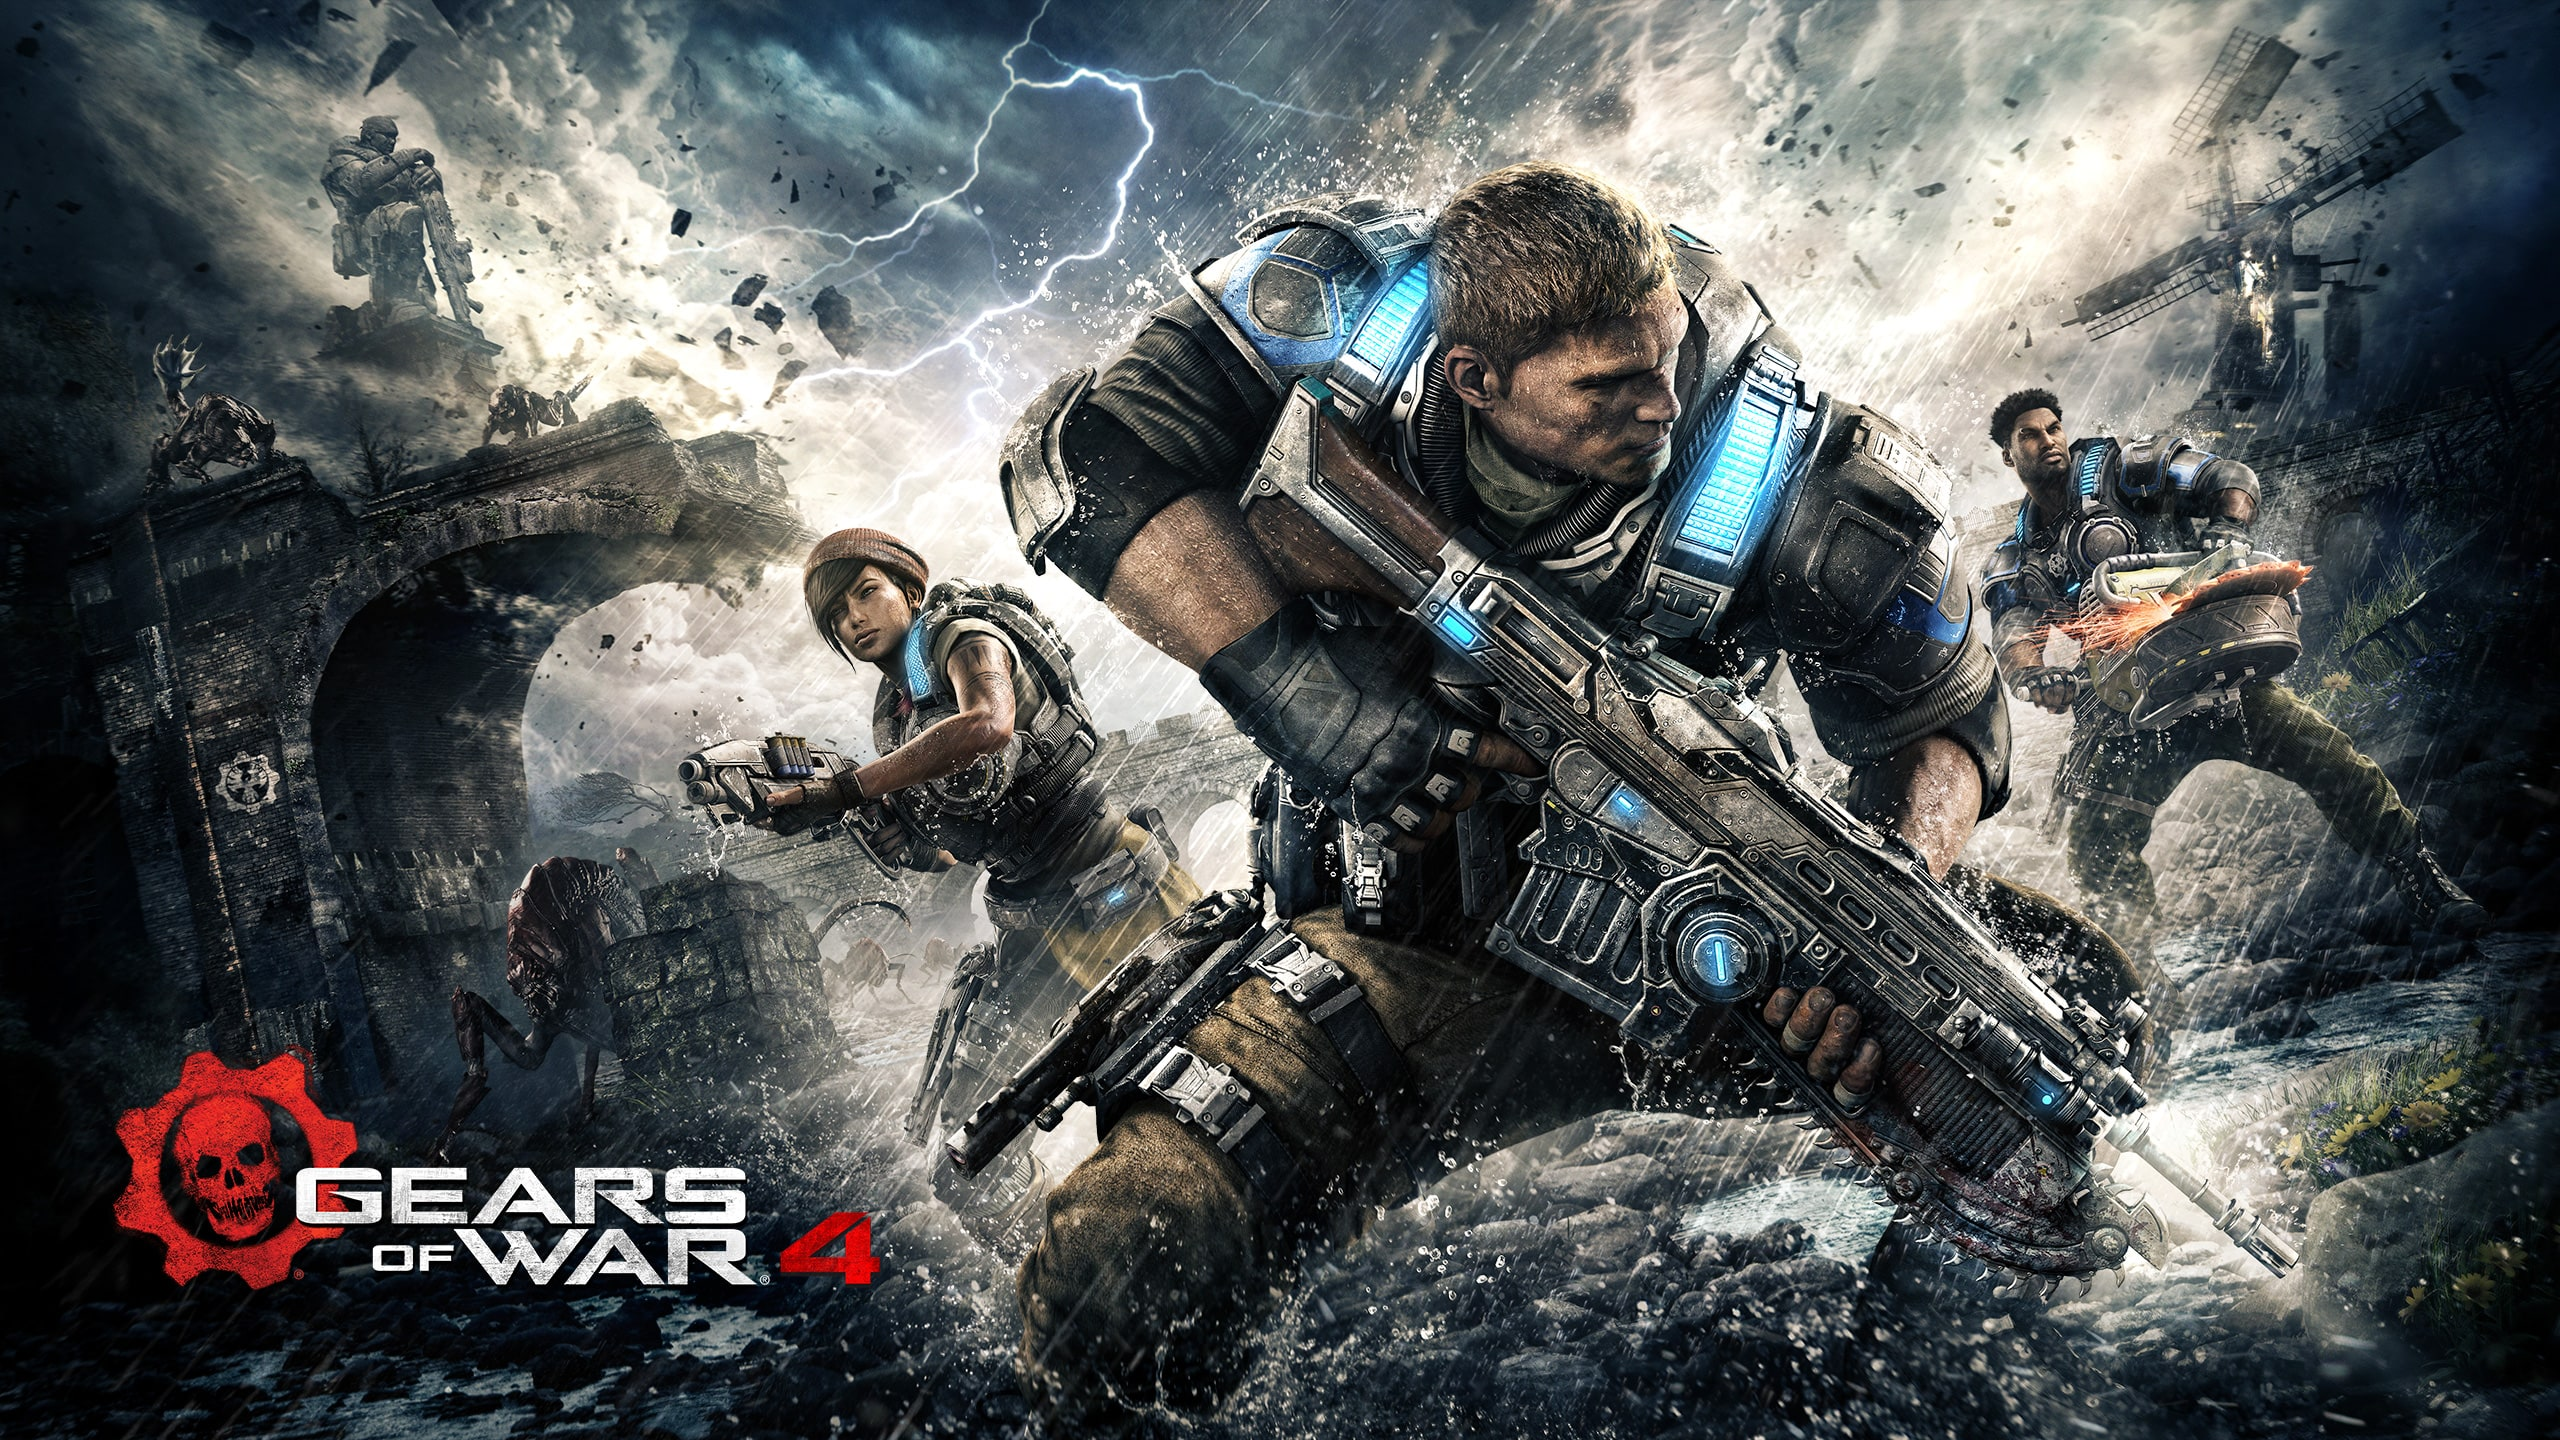 Gears of War 4 HQ wallpapers